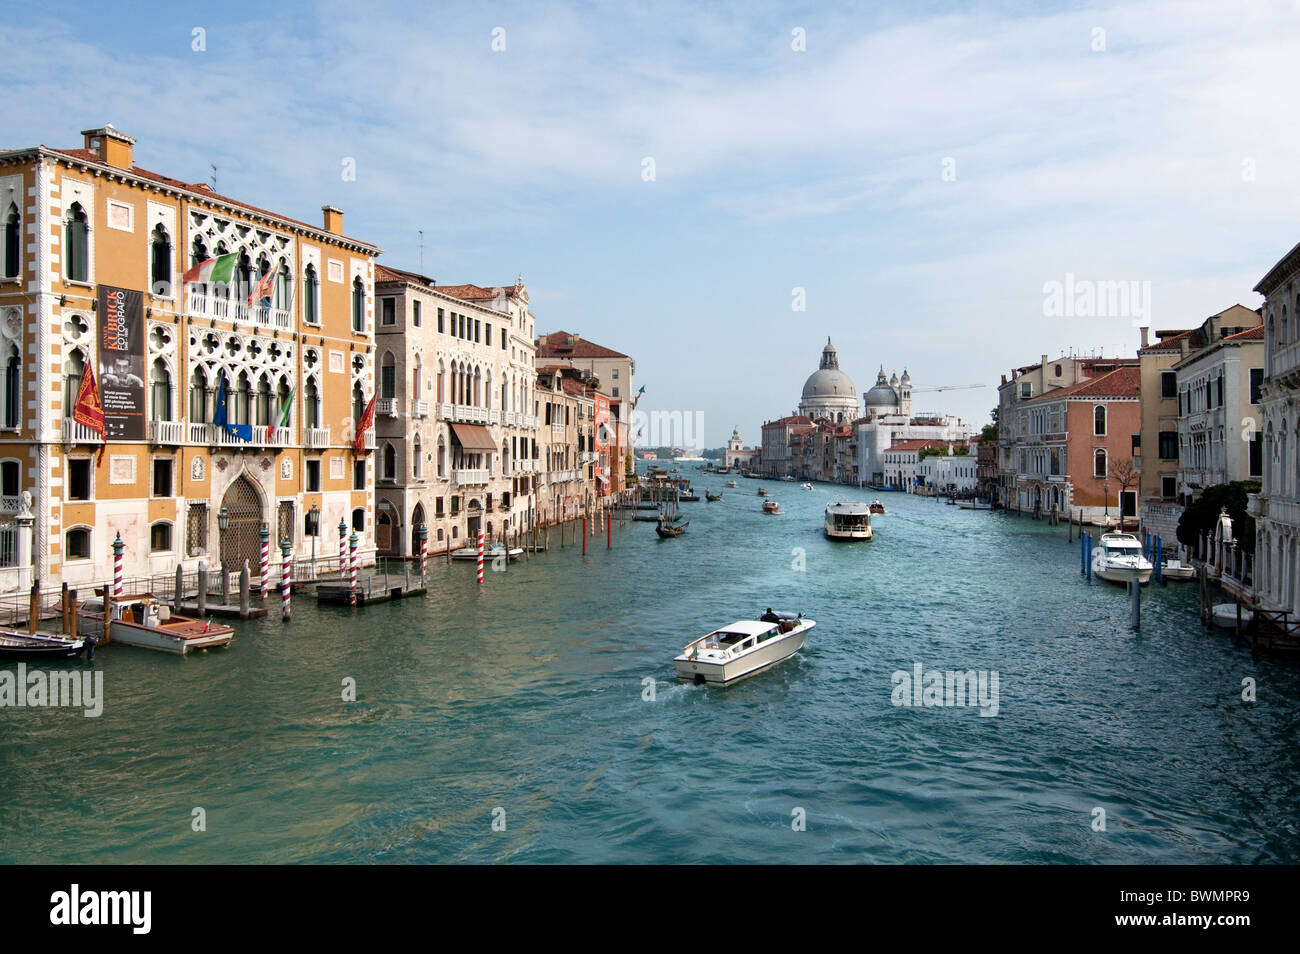 View from Accademia bridge to Canal Grande with Palazzis and church of Santa Maria della Salute, Venice 2010 - Stock Image